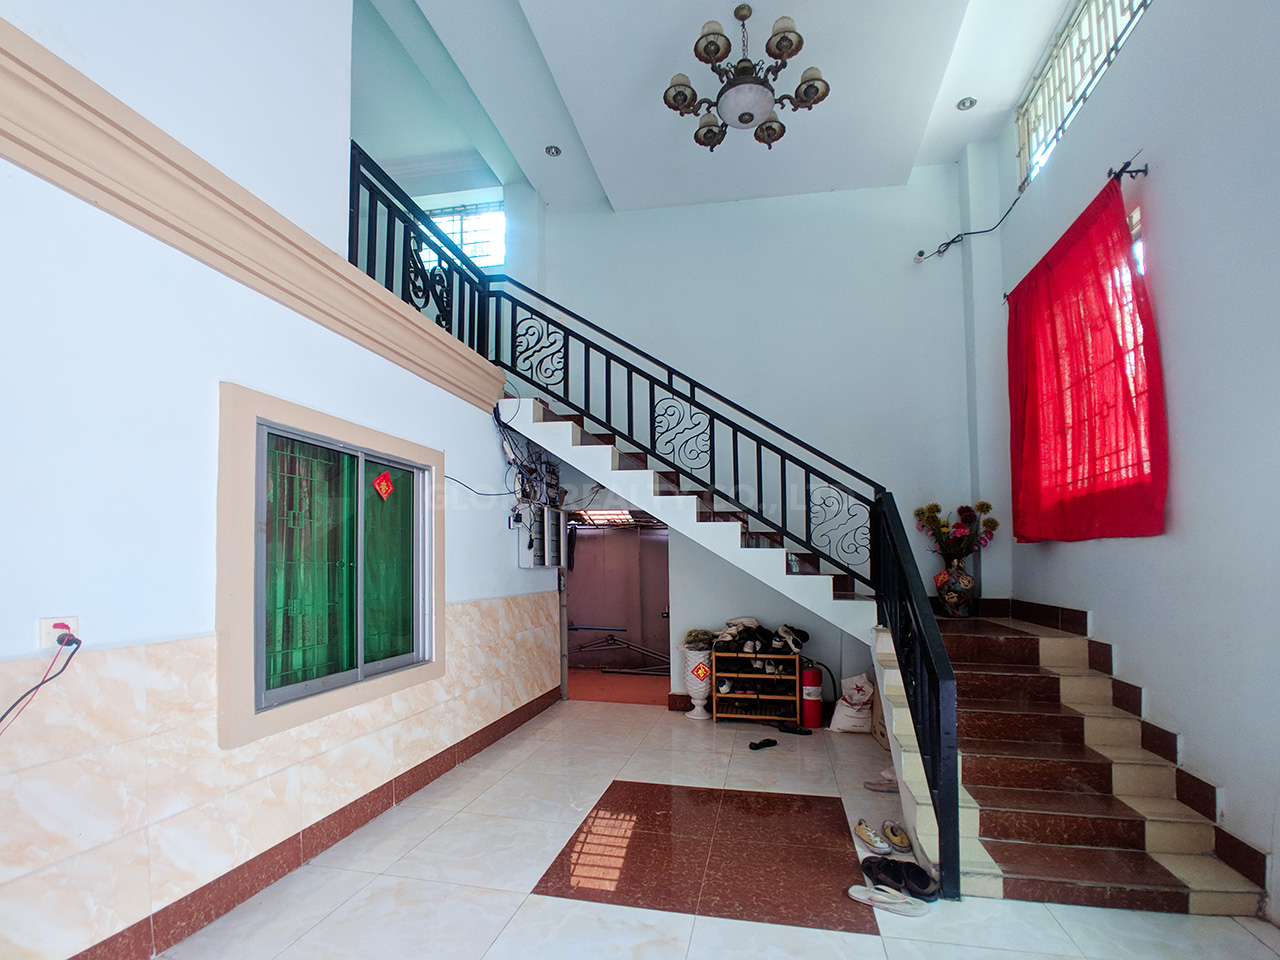 46 rooms guesthouse for rent @ Tuek Thla area